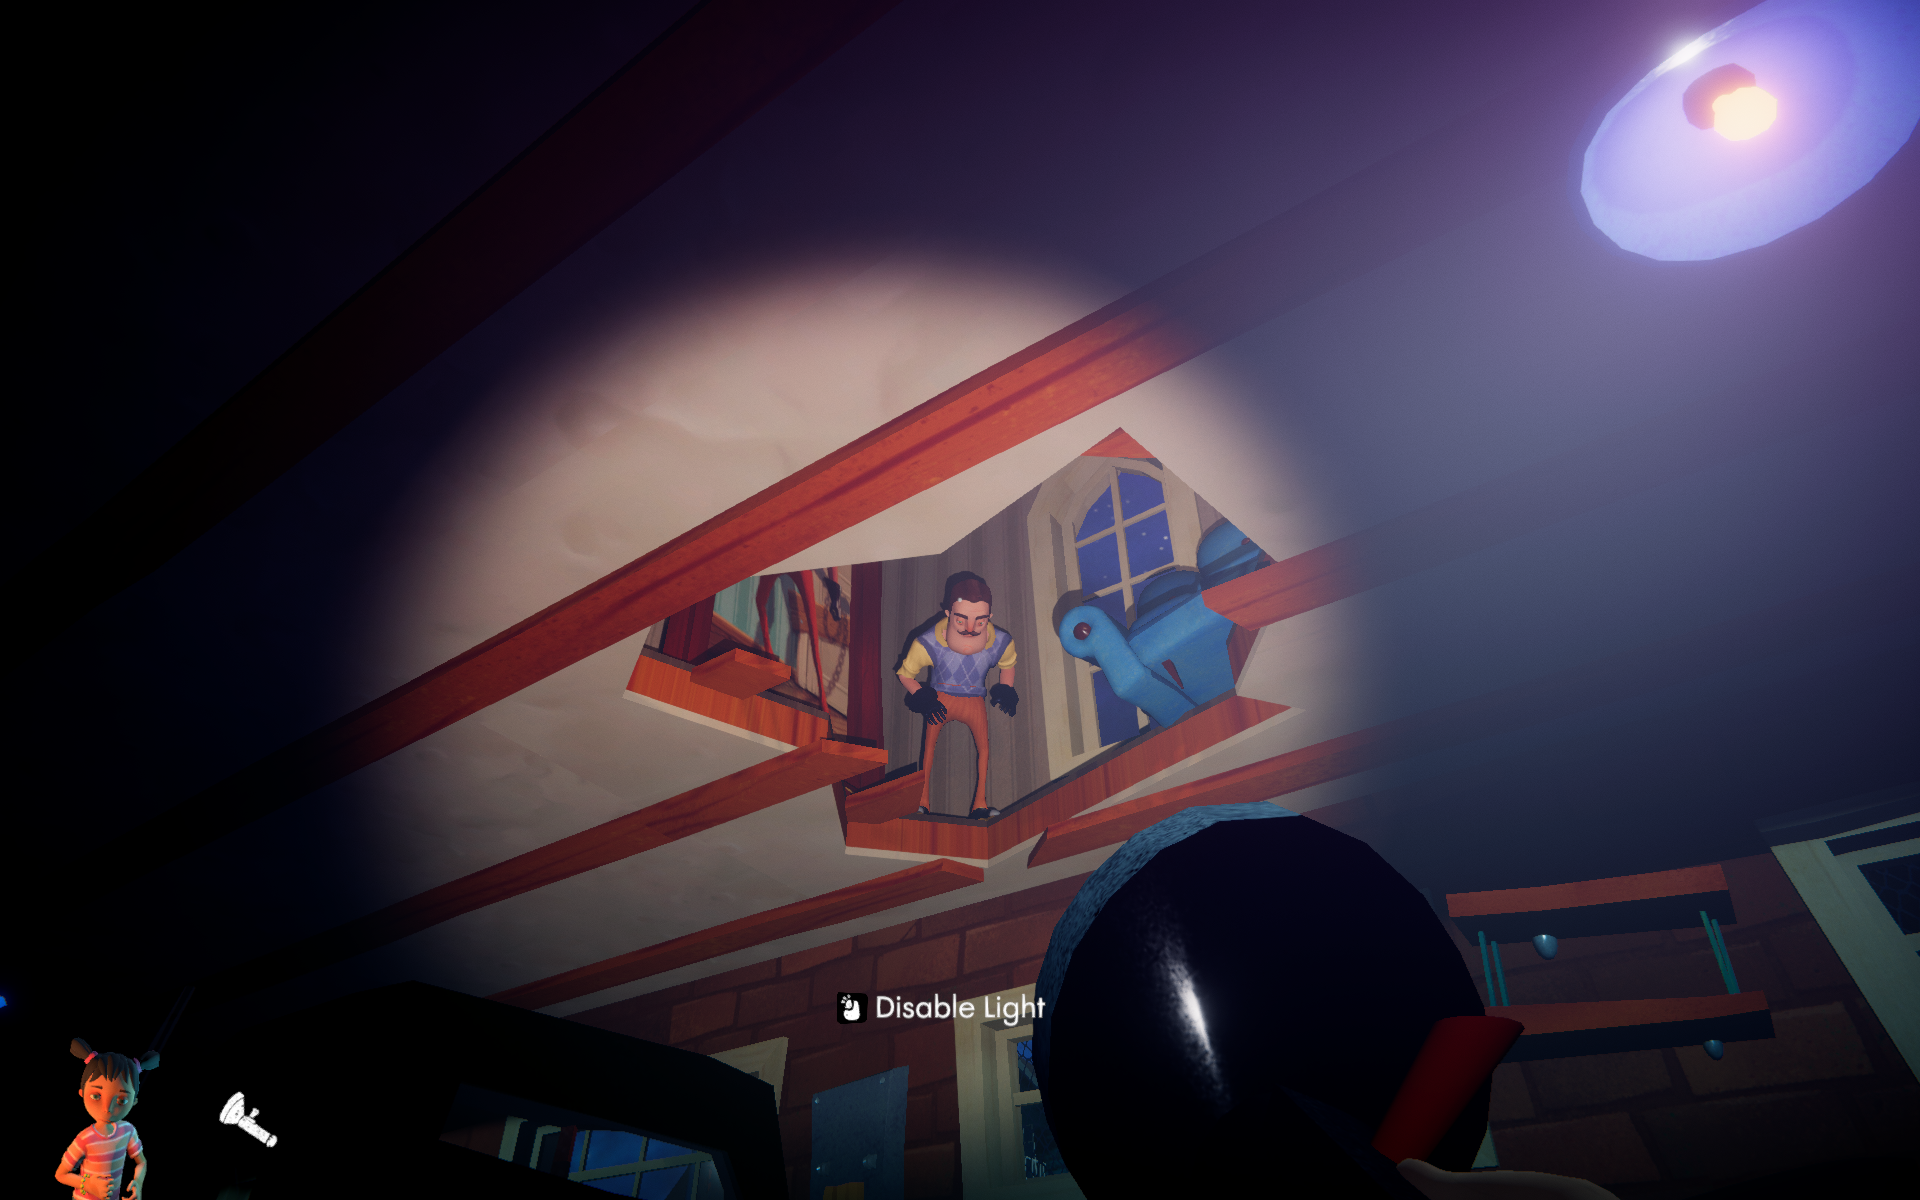 Secret Neighbor - Hello Neighbor Multiplayer Horror Game